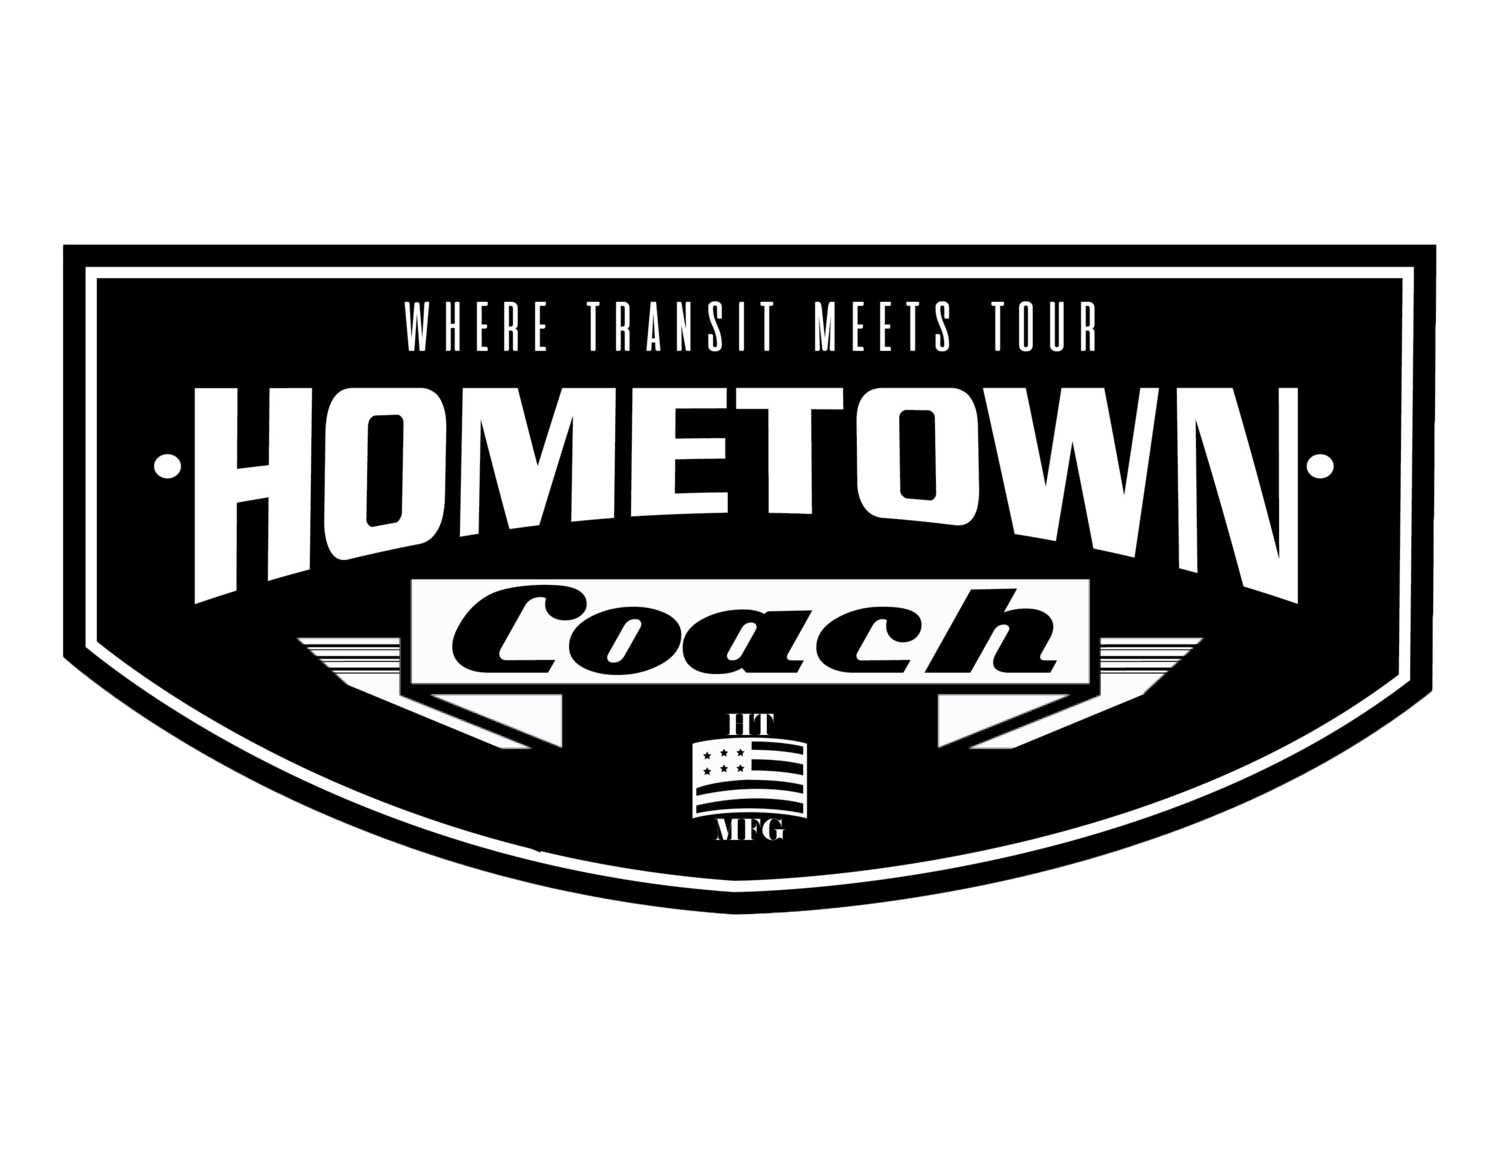 HOMETOWN COACH